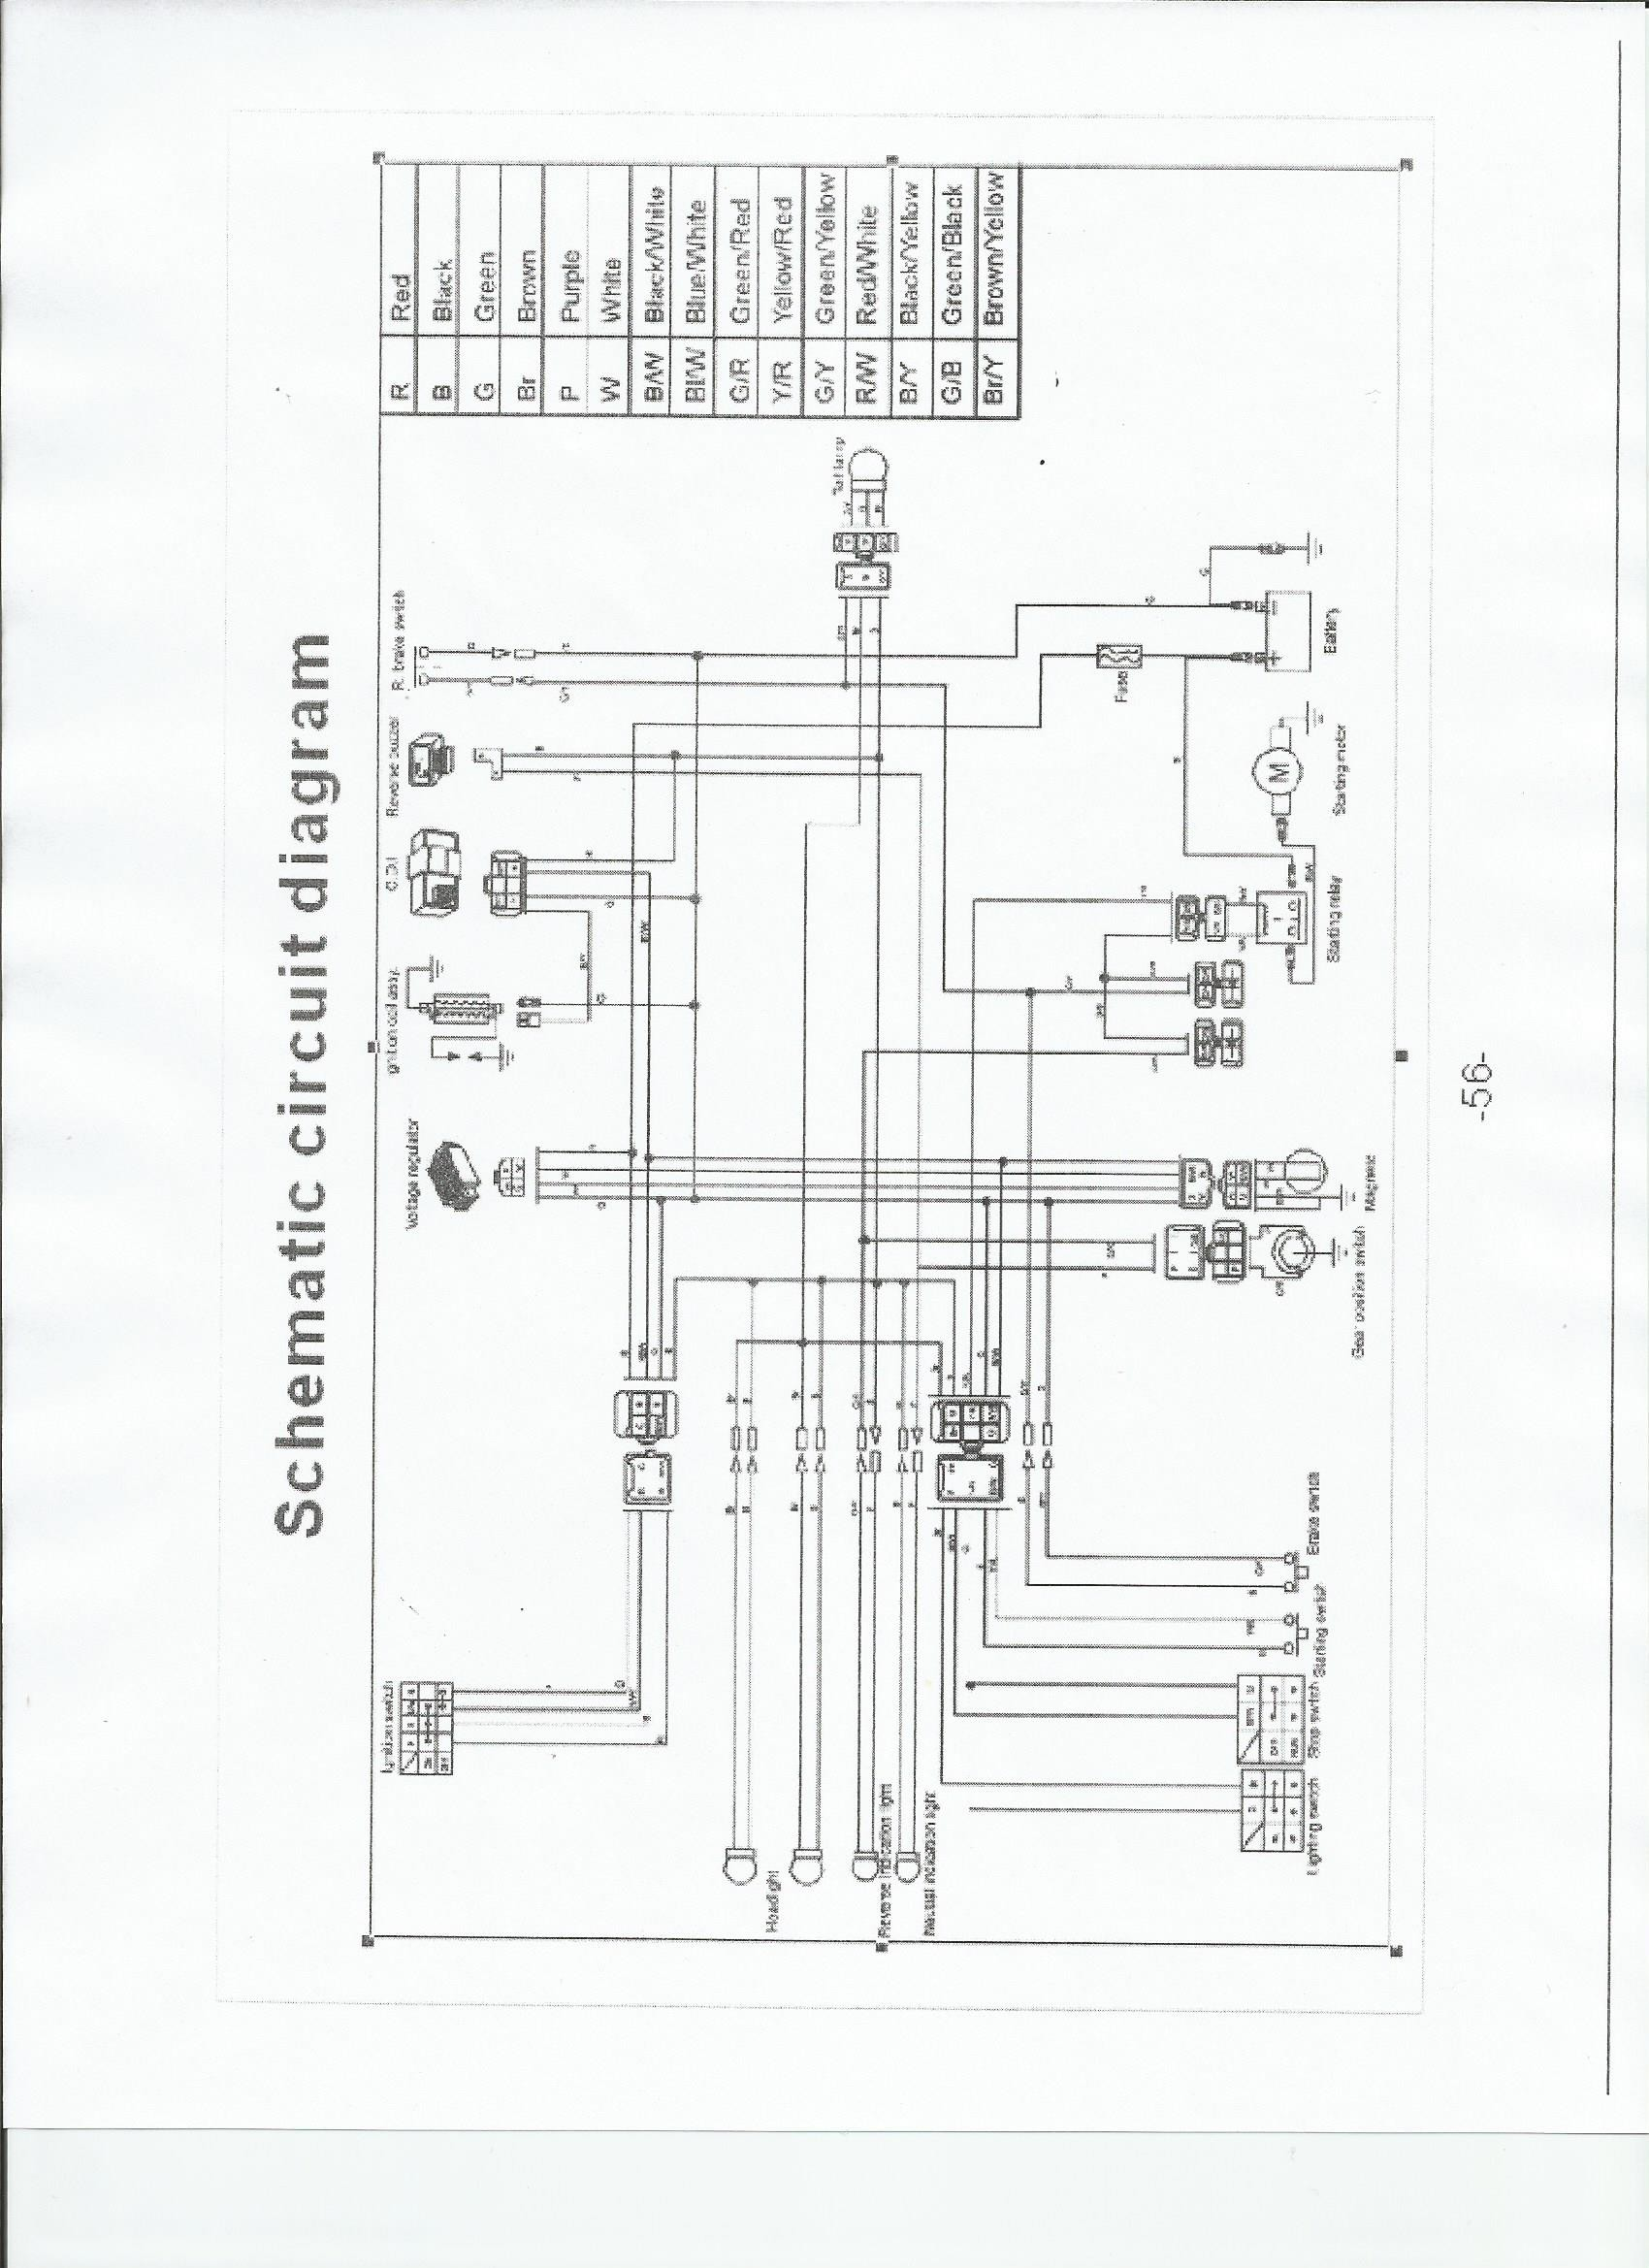 Fine Kazuma Go Kart Wiring Diagram Today Diagram Data Schema Wiring 101 Akebwellnesstrialsorg